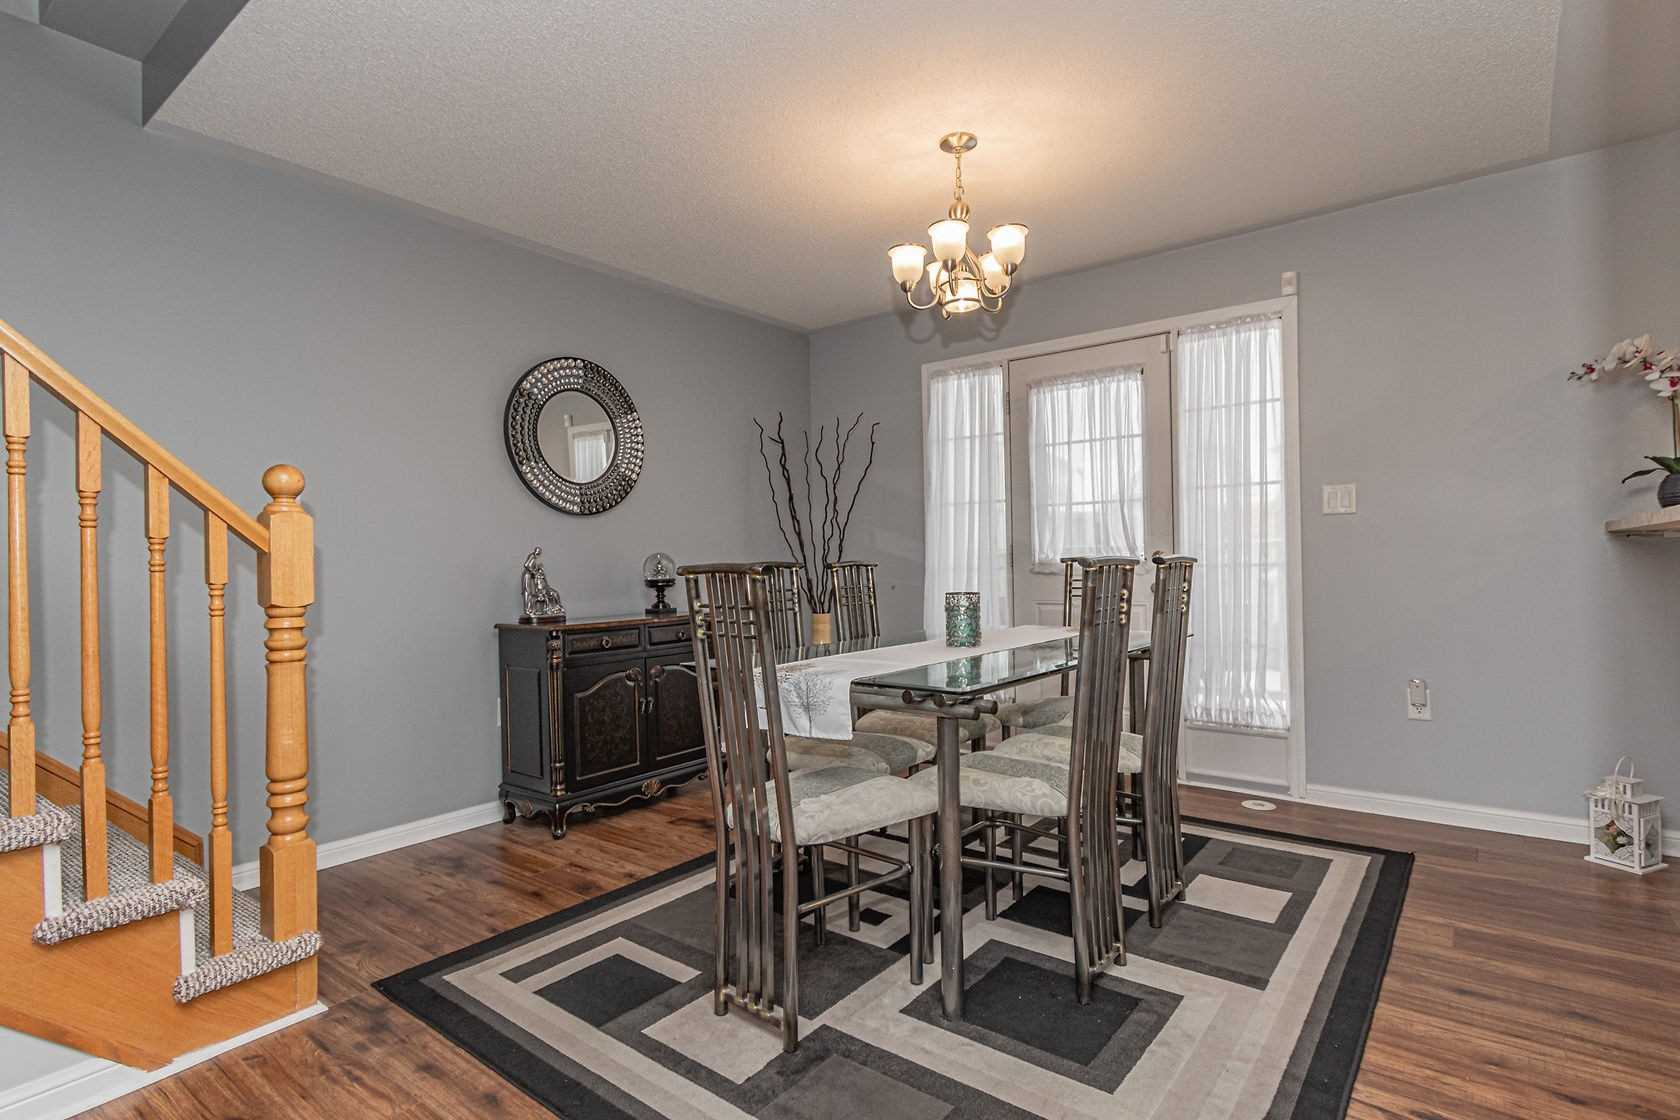 Image 18 of 20 showing inside of 3 Bedroom Att/Row/Twnhouse 3-Storey house for sale at 912 Ambroise Cres, Milton L9T0M2